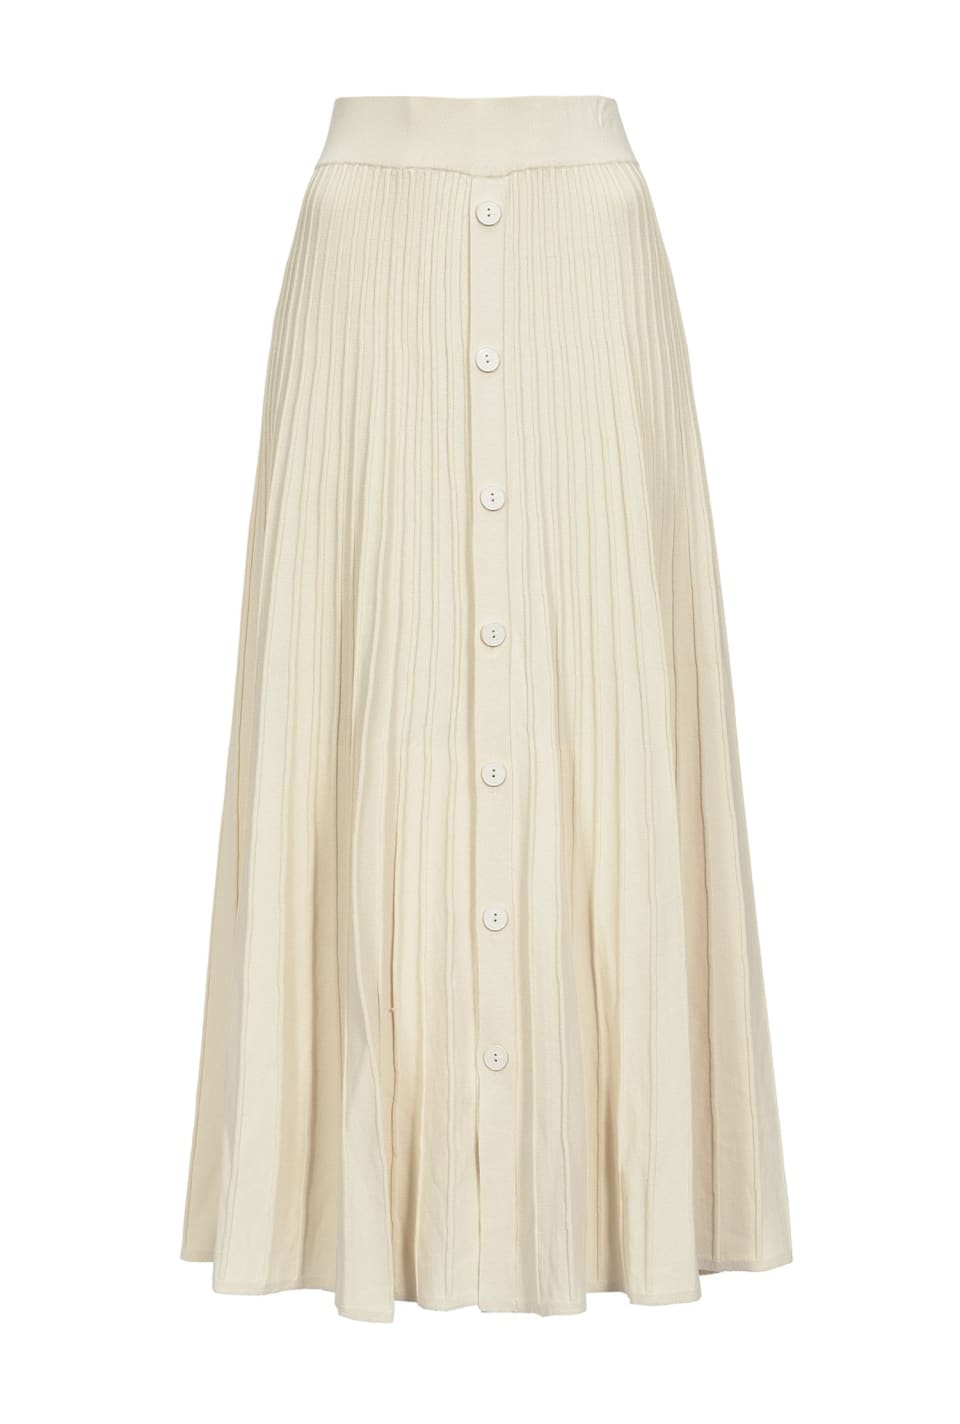 Maxi ribbed skirt - Pinko